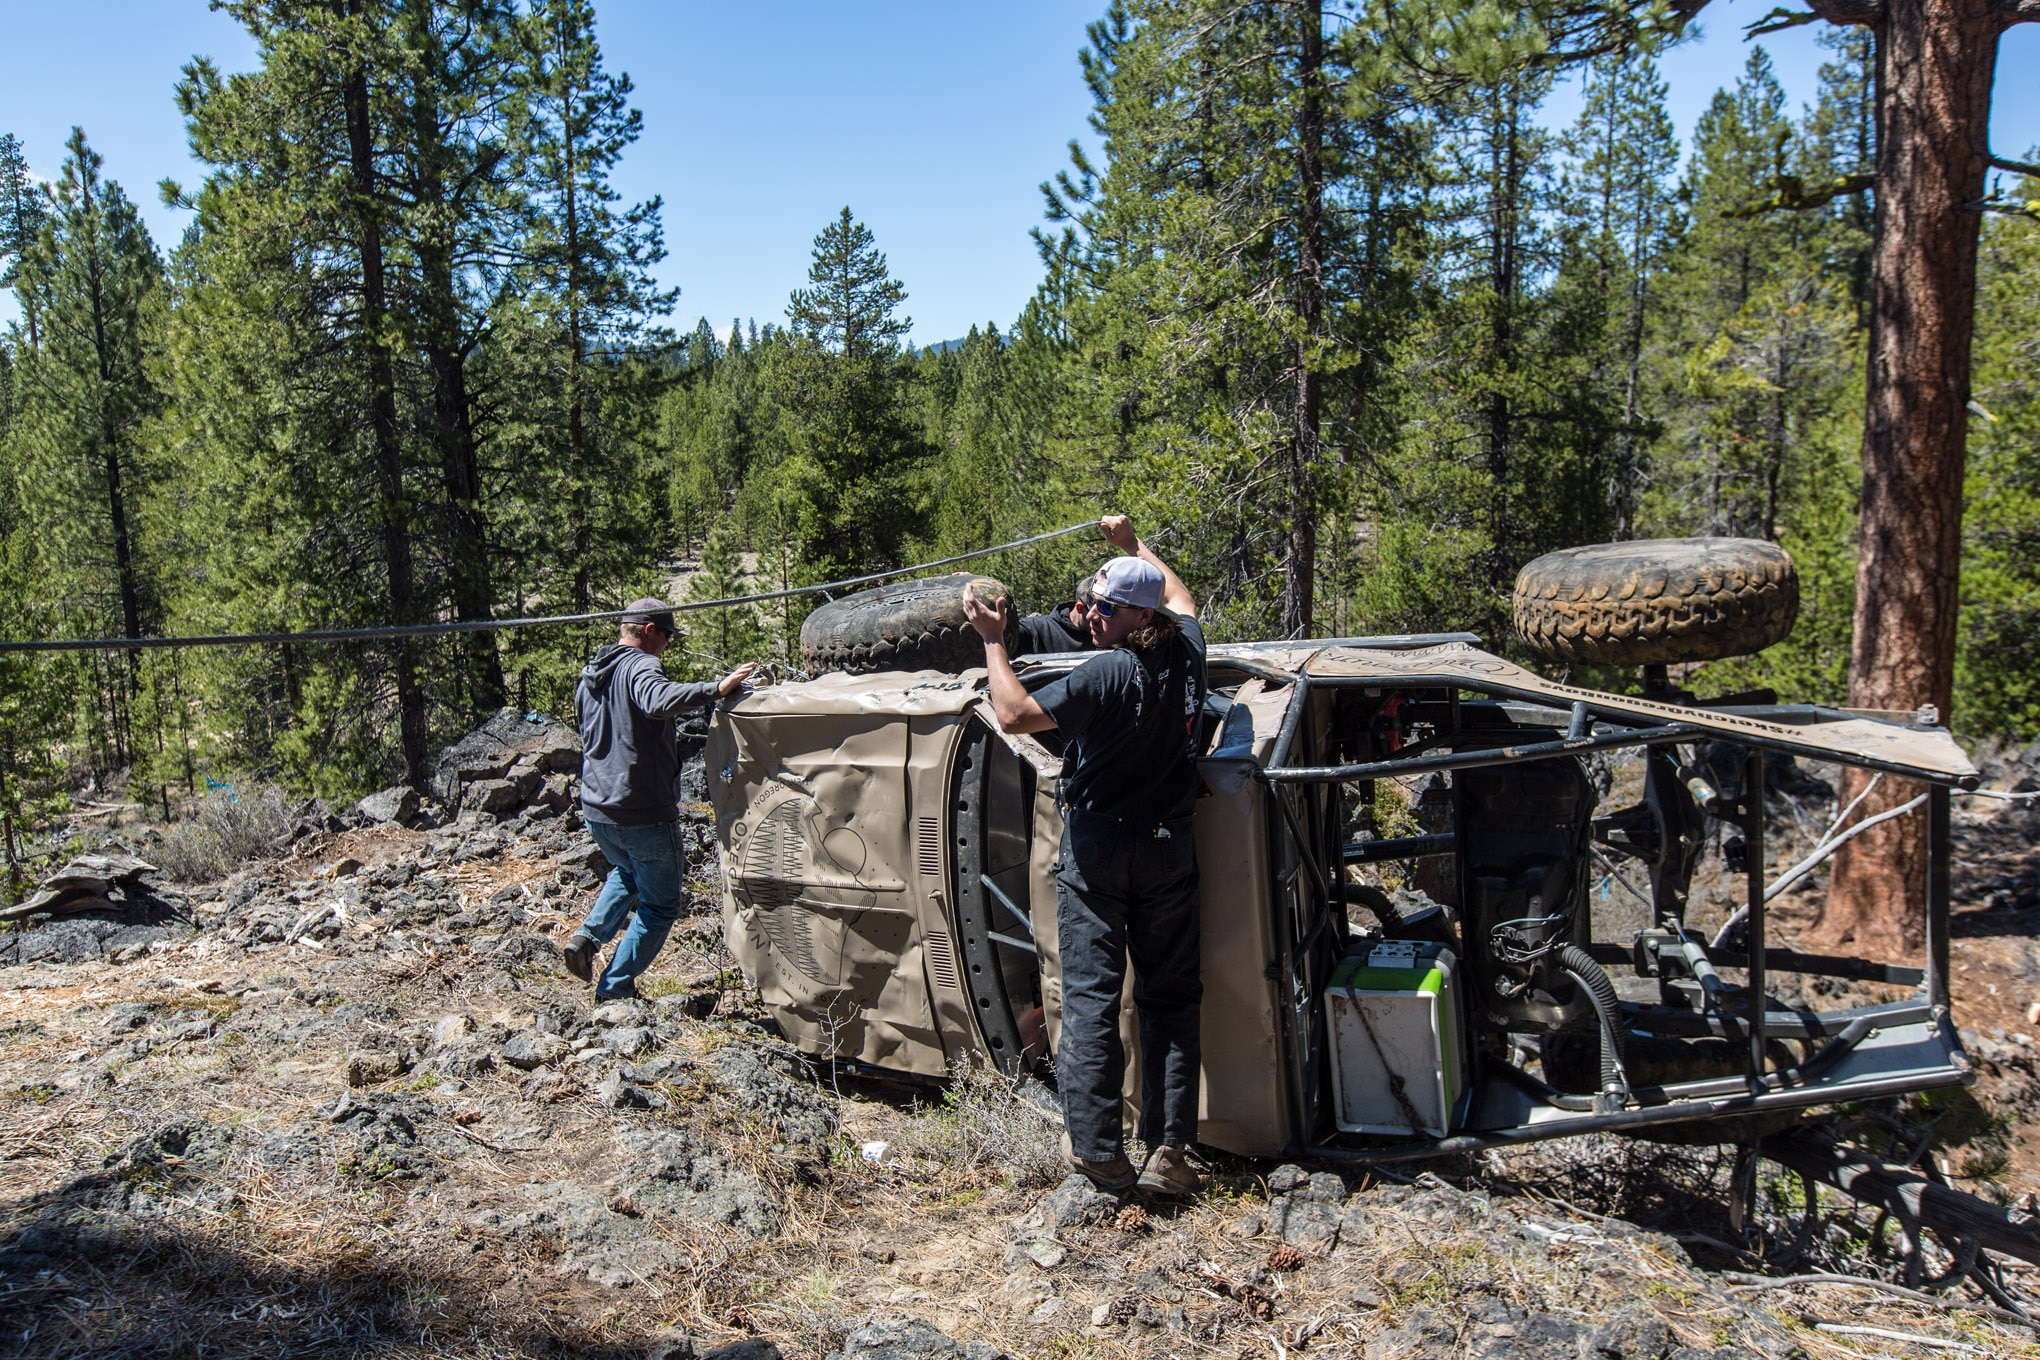 Cody Reems was taking high lines over obstacles all day long. How do you know where the limits are if you never find them? While he didn't break anything on the trail, Reems did flop his truck on its side at one point in the day. A quick tug was all that was necessary to get him moving again.